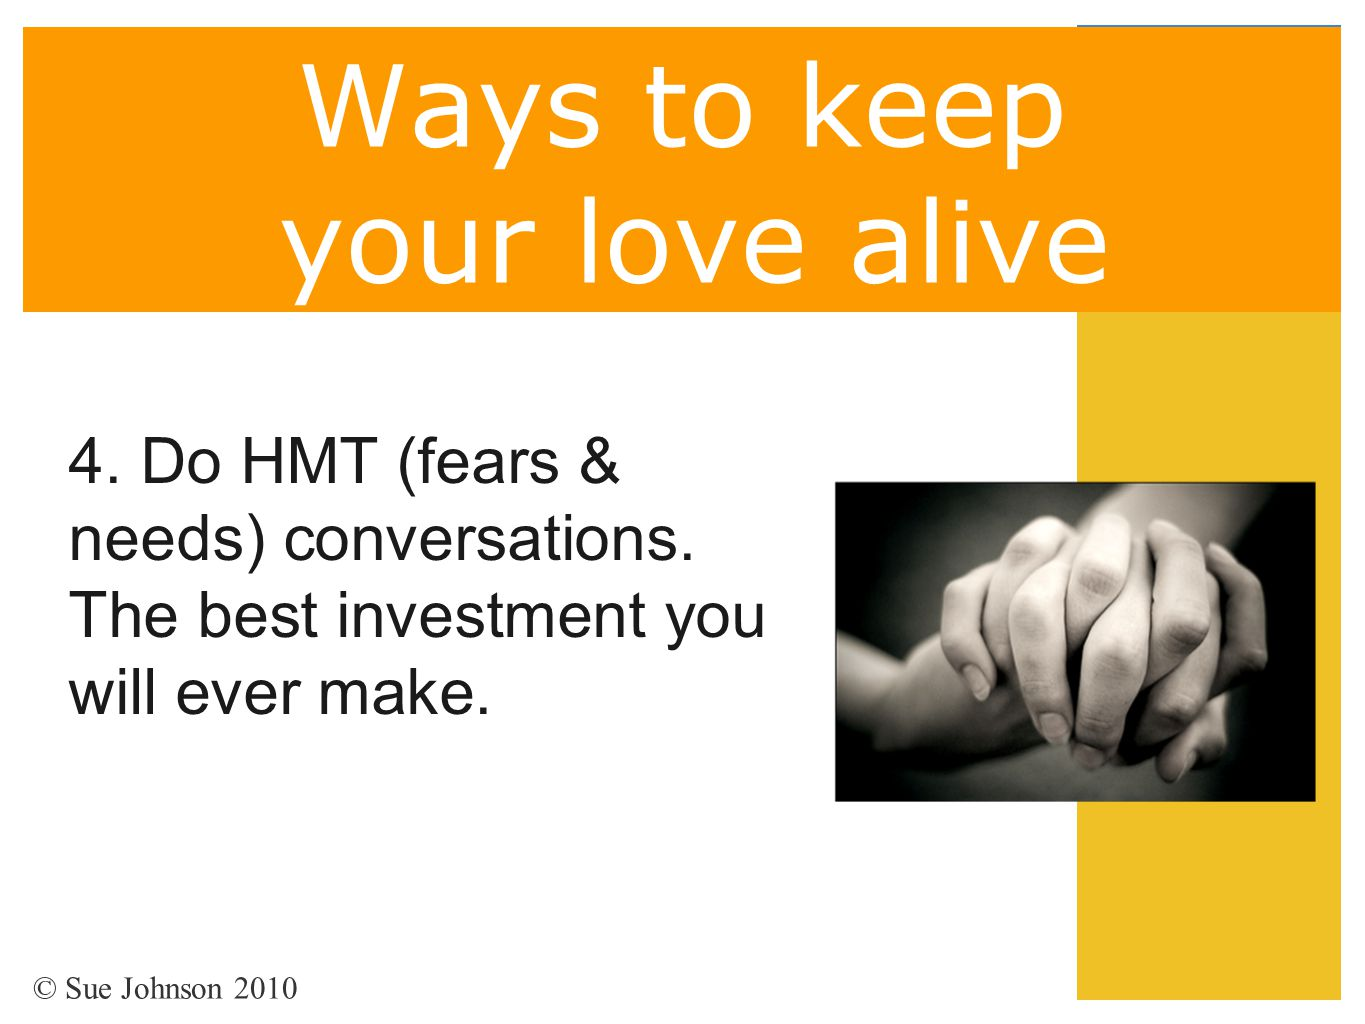 Ways to keep your love alive 4. Do HMT (fears & needs) conversations. The best investment you will ever make. © Sue Johnson 2010